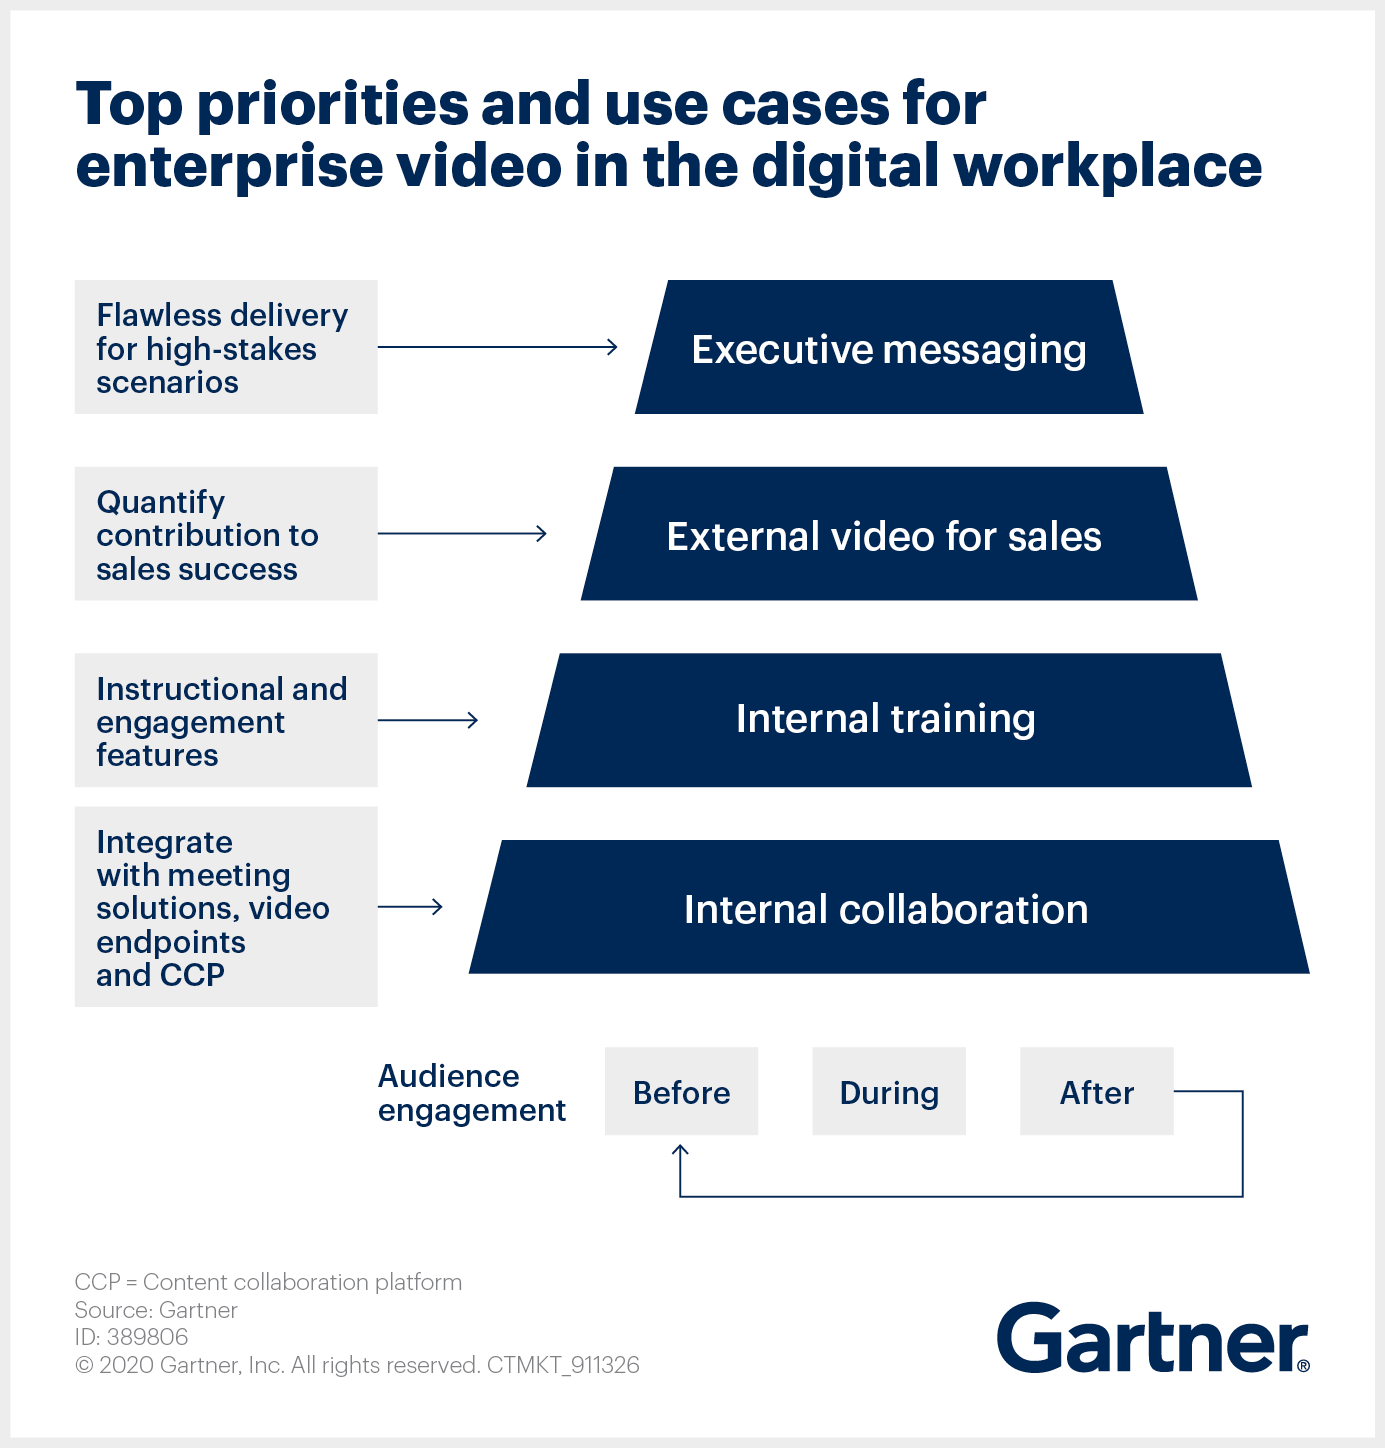 Gartner Top Priorities and Use Cases for Enterprise Video in the Digital Workplace.png